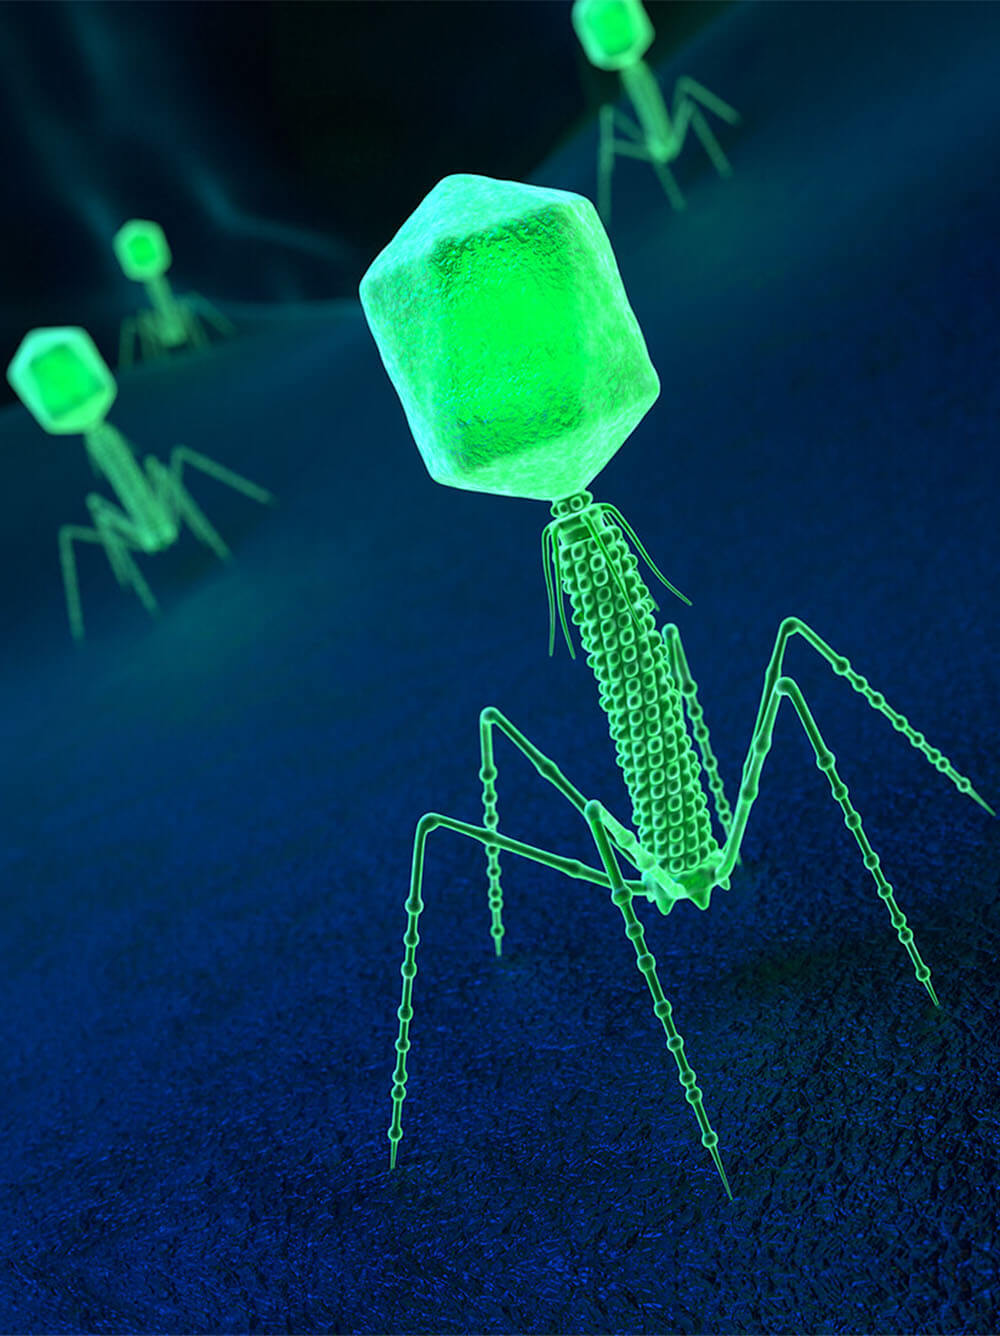 Viruses under a microscope rendition